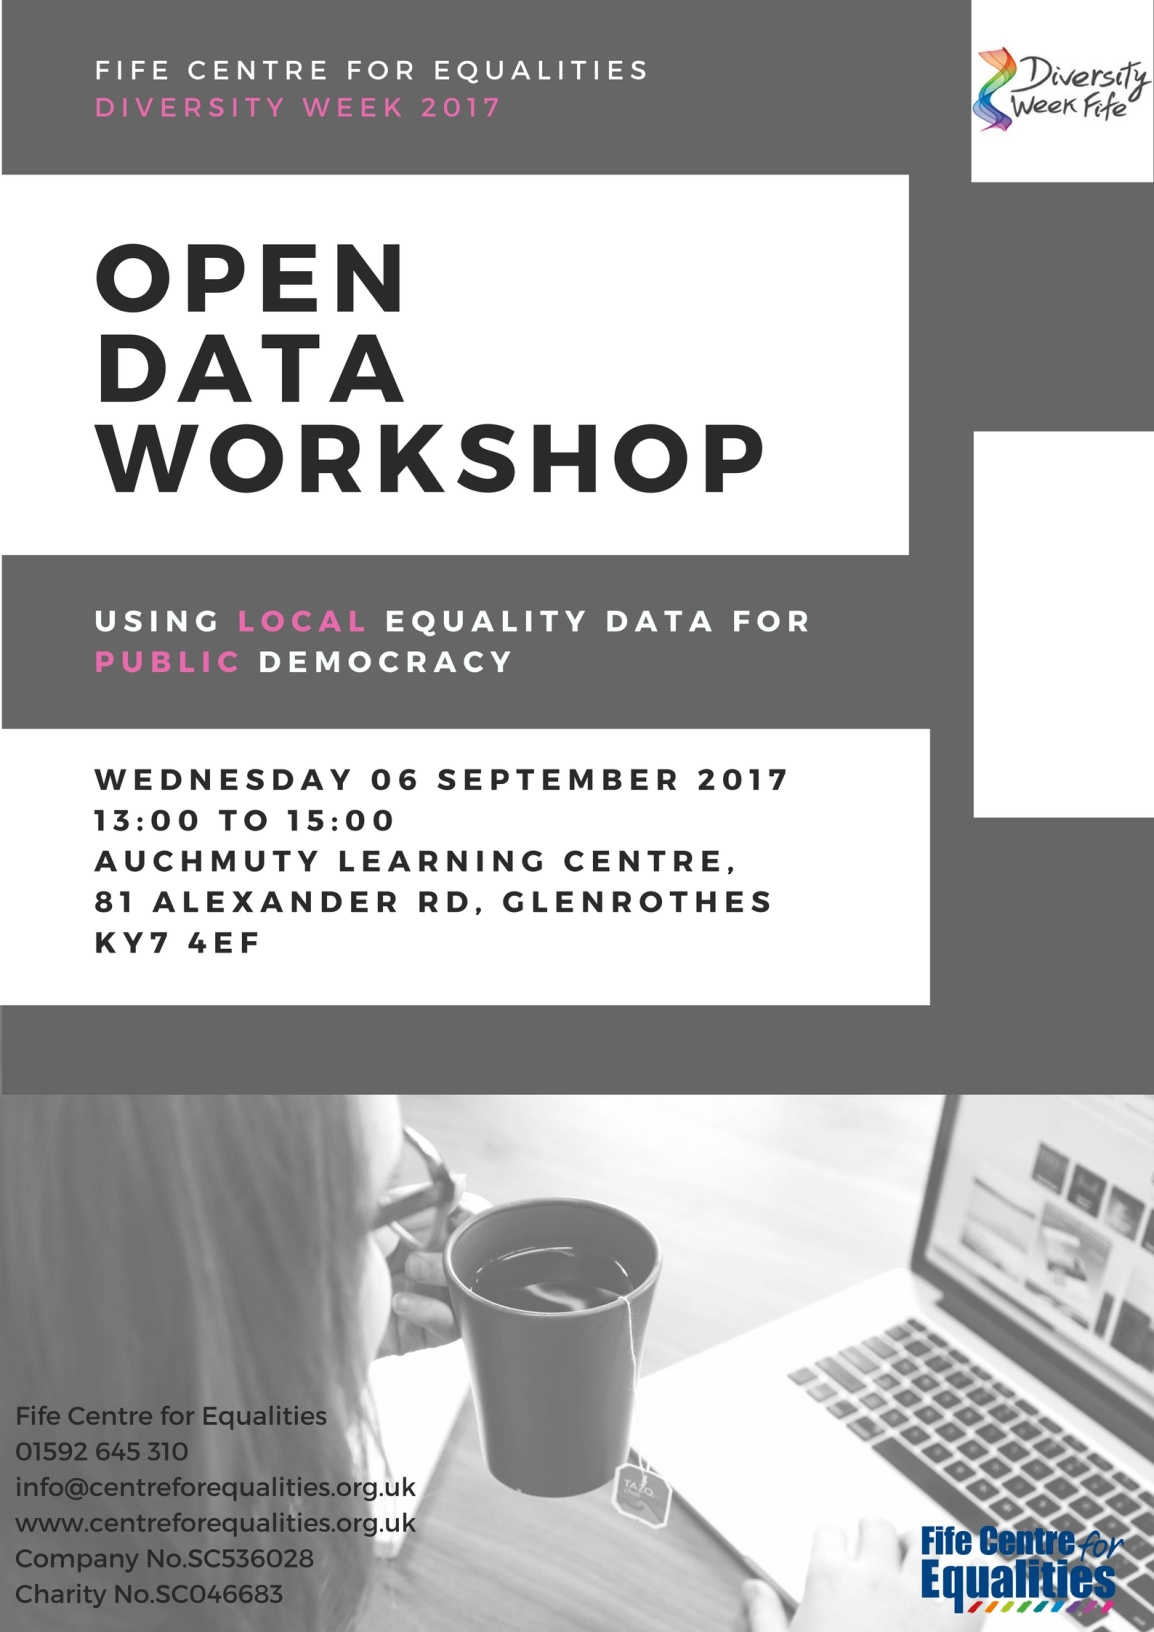 Diversity Week 2017: Open Data Workshop Evaluation Report